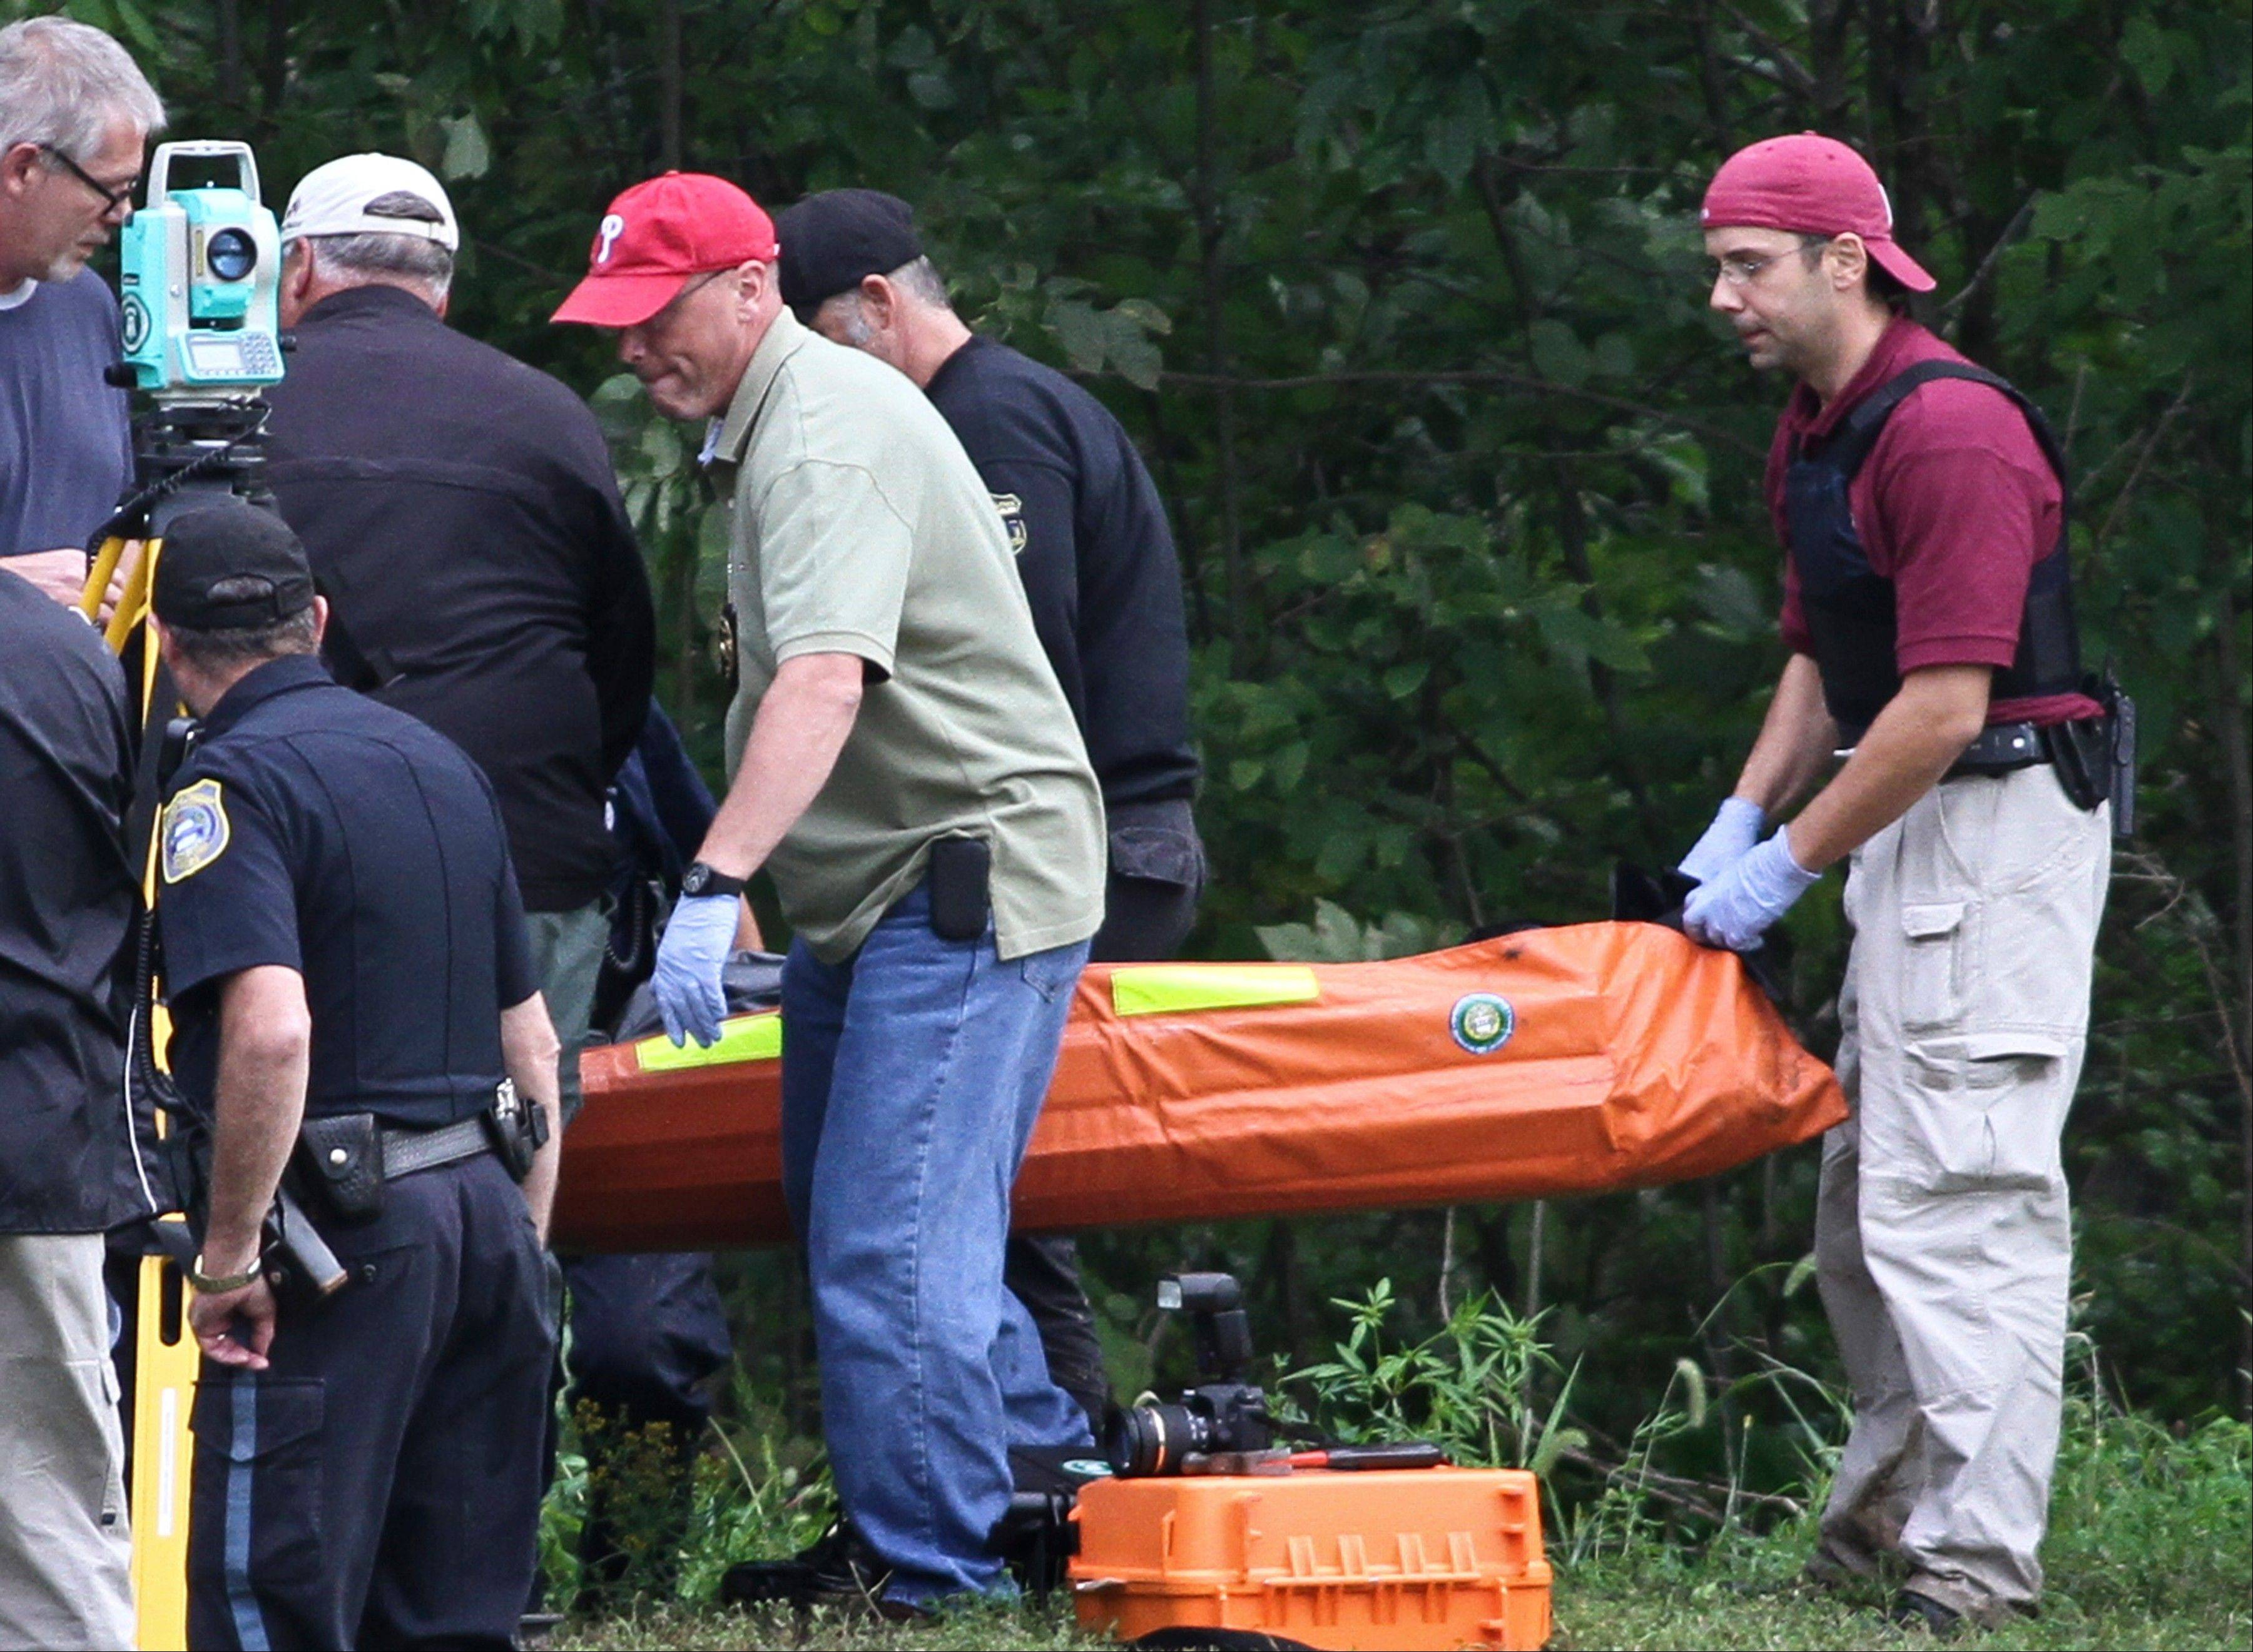 Investigators carry the body of Leonard John Egland from a wooded area in Warwick Township Pa., on Sunday, where he had been sought by police since early morning. Egland, who is suspected of killing four people in Pennsylvania and Virginia, was found dead of an apparently self-inflicted gunshot wound in suburban Philadelphia after a daylong manhunt during which he fired at and injured officers, authorities said.